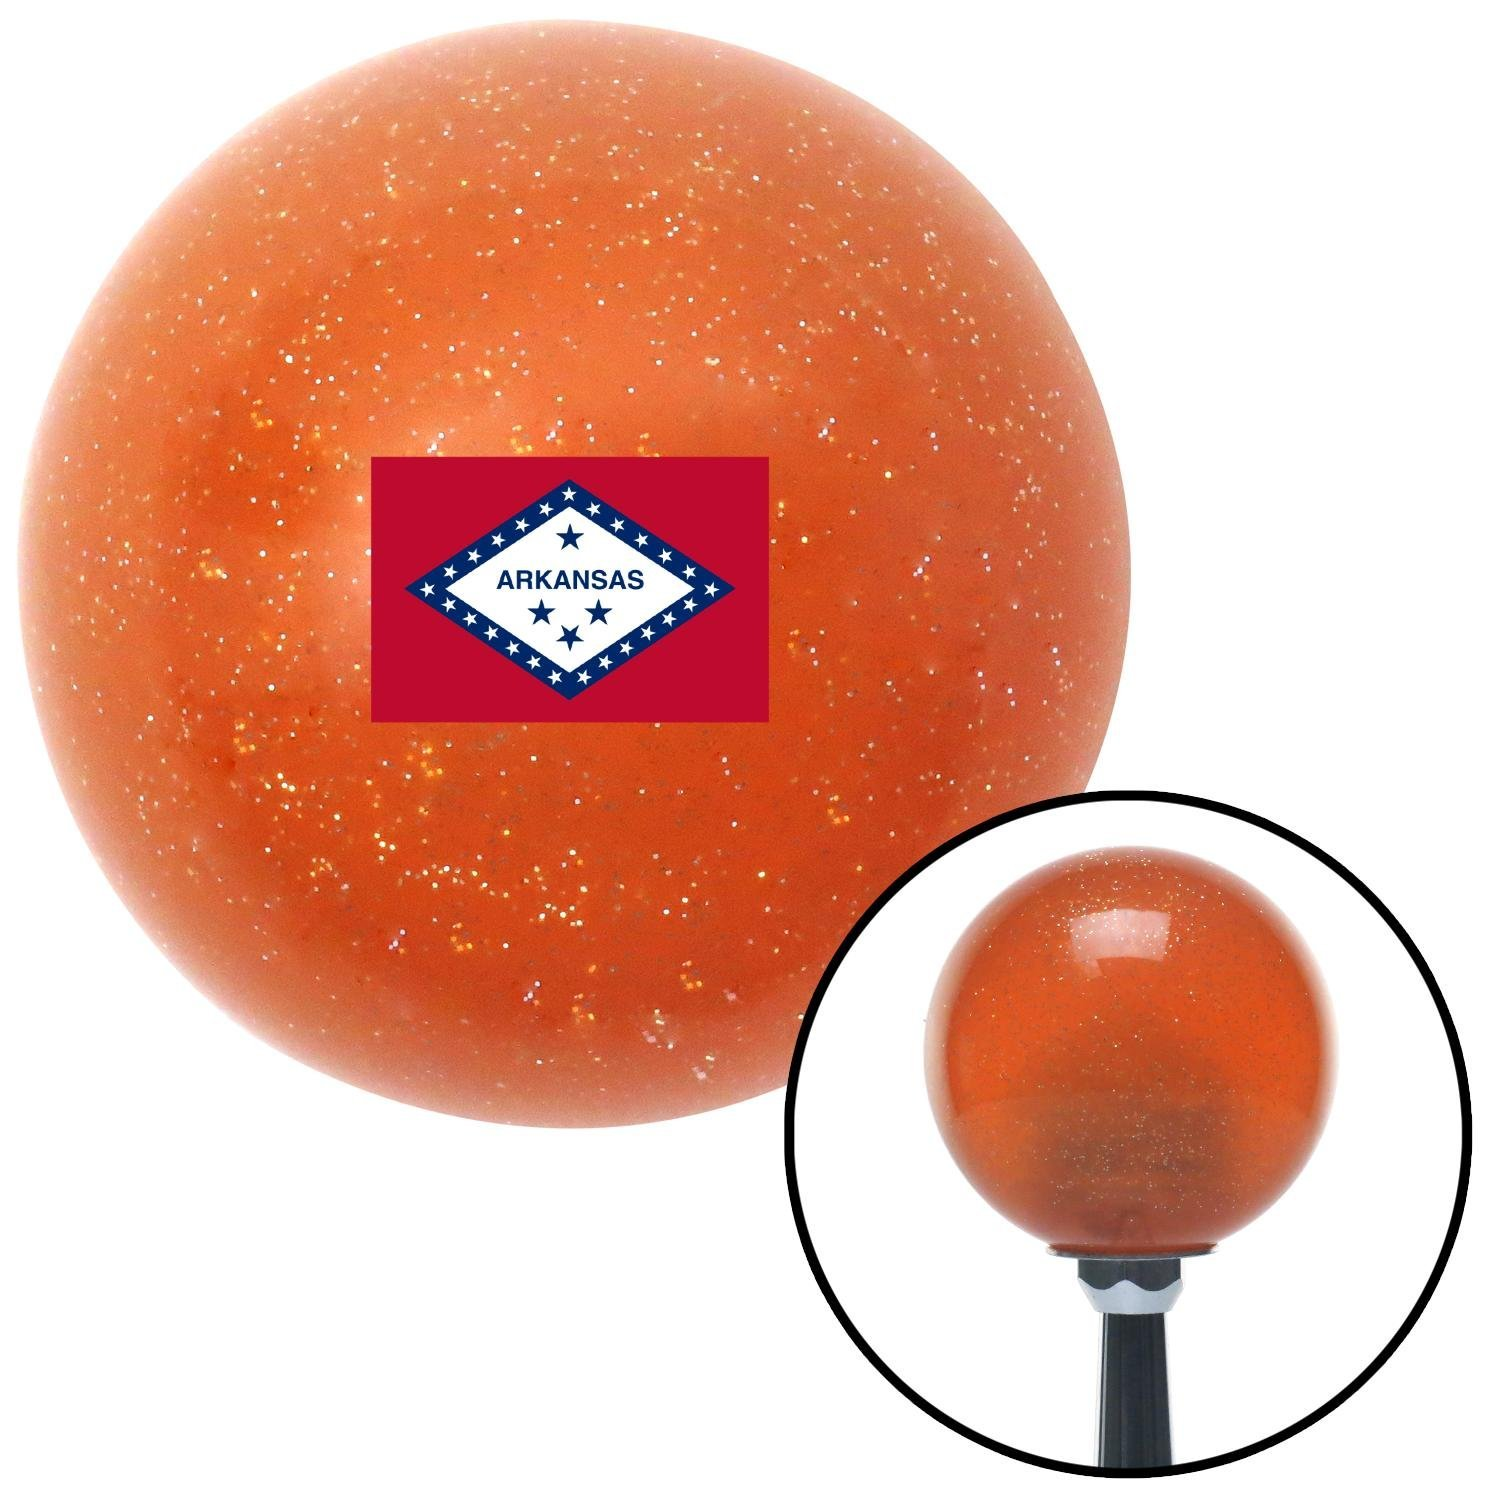 American Shifter 302706 Shift Knob Arkansas Orange Metal Flake with M16 x 1.5 Insert